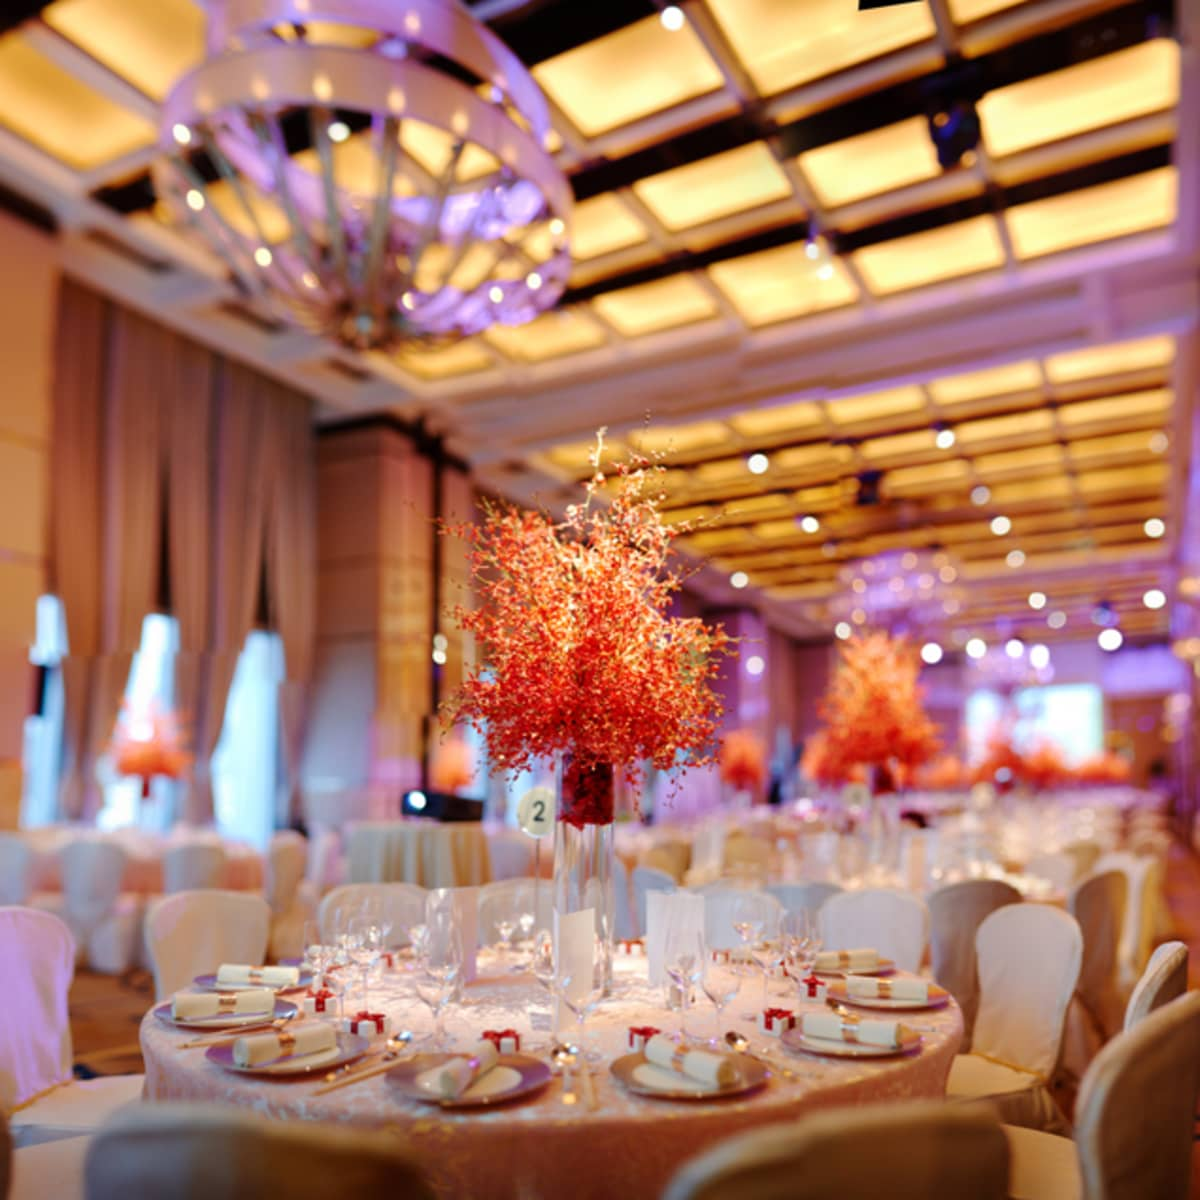 Everything Is In Place For Gary And Samantha S Elegant Reception At Four Seasons Hotel Hong Kong